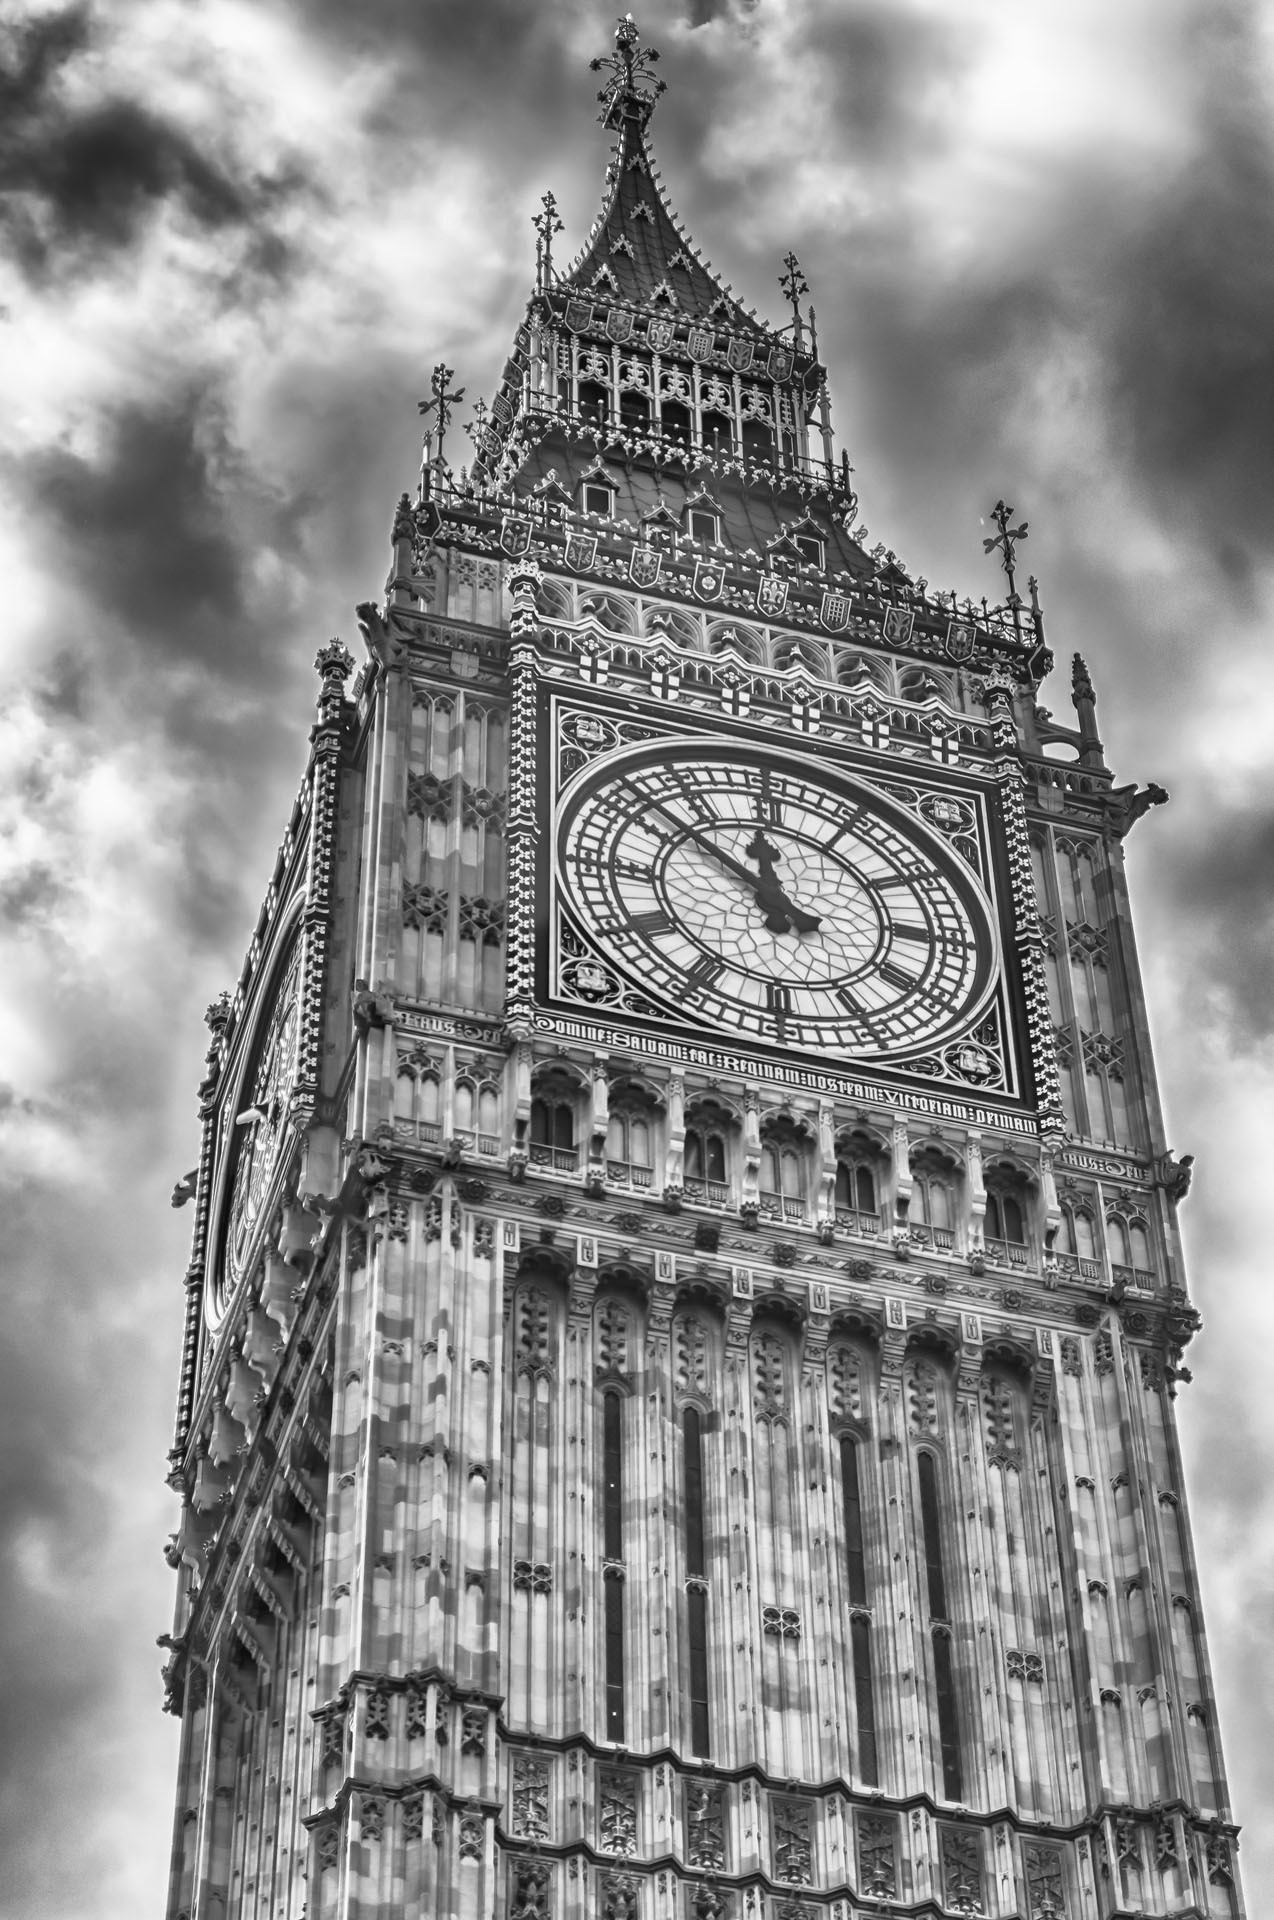 The Big Ben, Houses of Parliament, London, UK